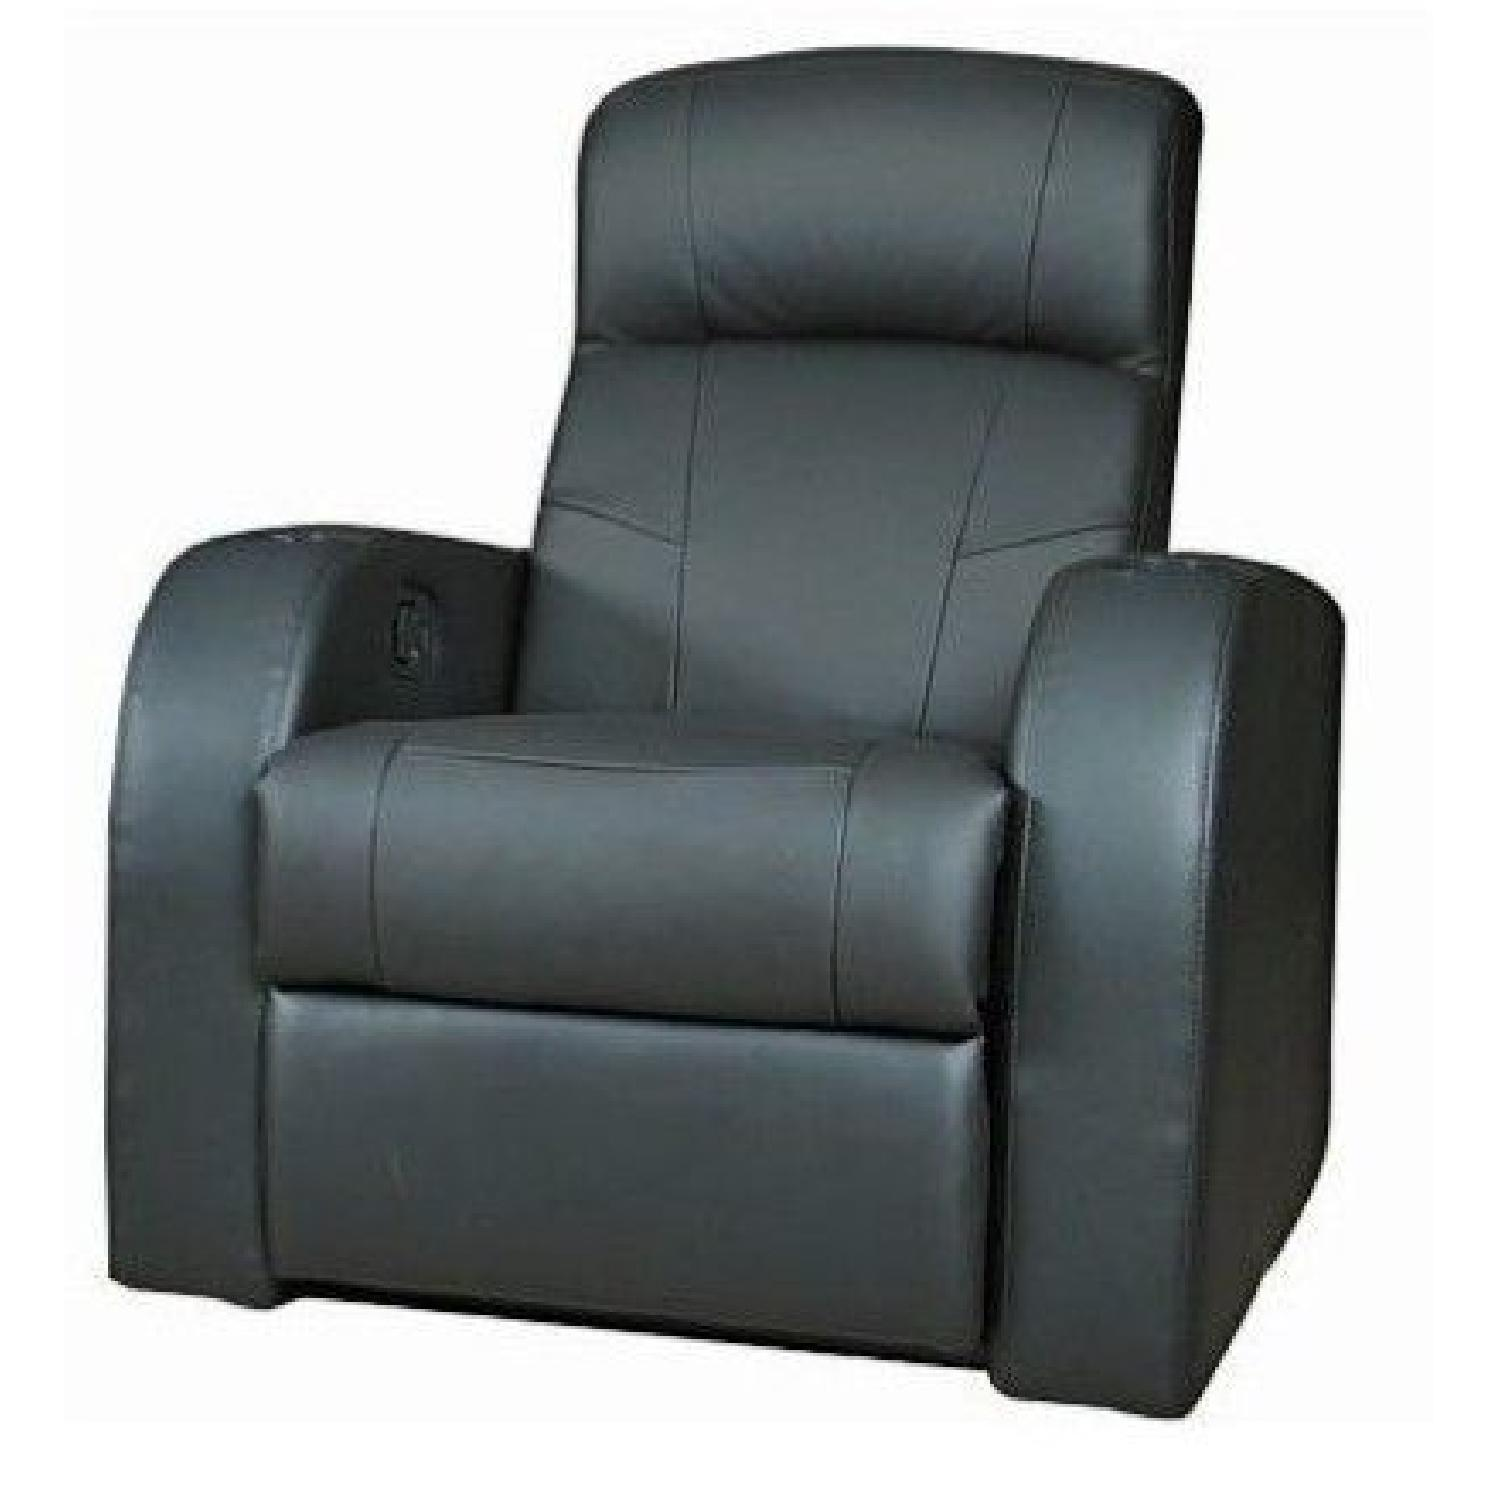 Recliner Chair In Black Leather Match W Cup Holders Aptdeco